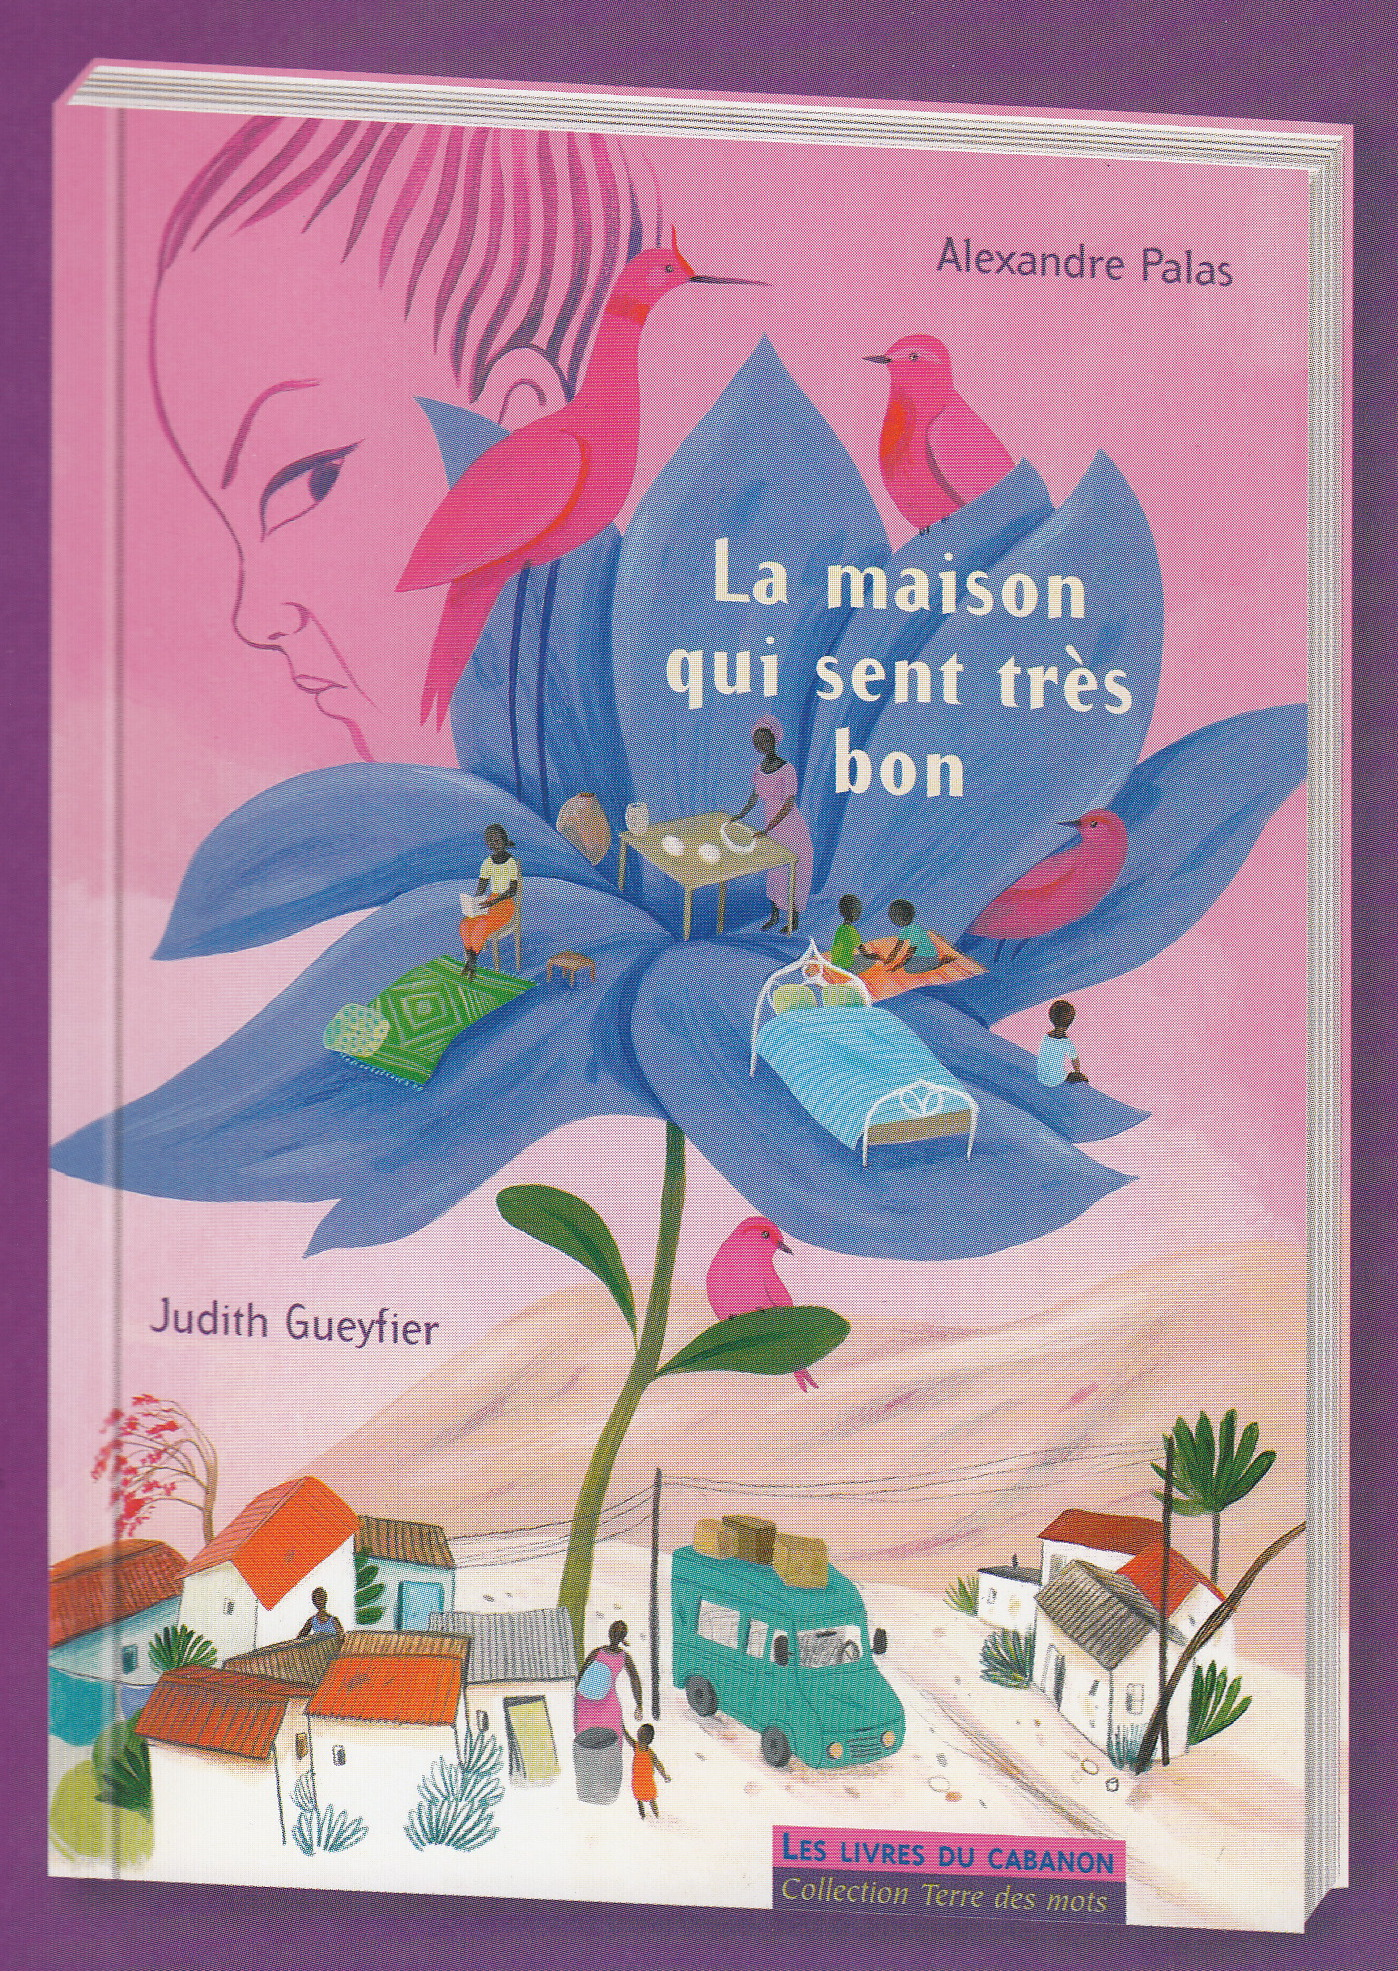 Illustration de Judith Gueyfier.